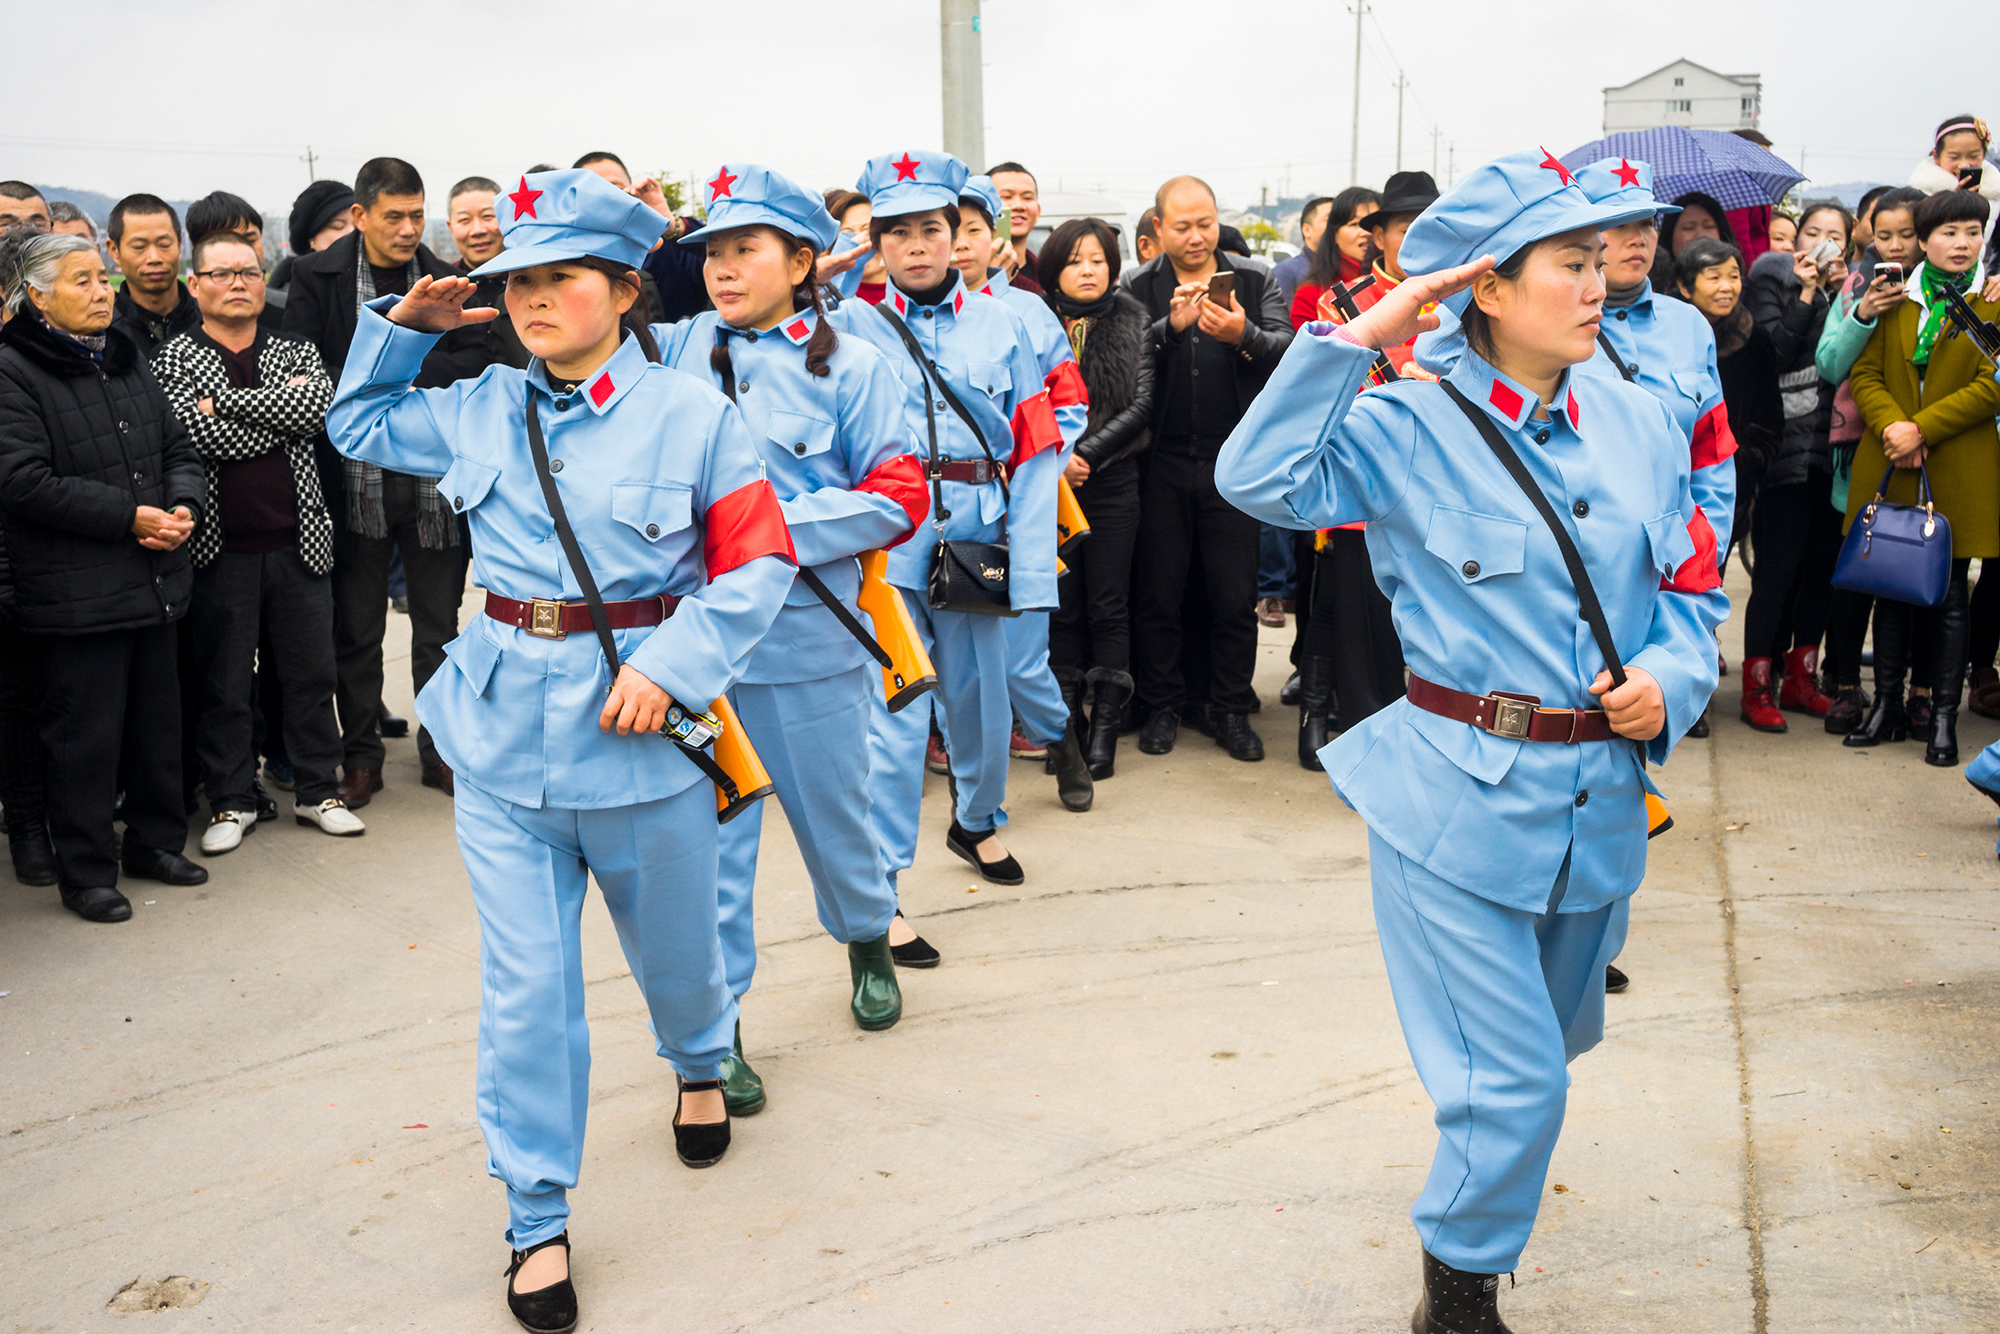 Women wearing replicas of Red Army uniforms perform at a Buddhist ceremony in Taoshan township, February 27, 2015. In order to gain government approval for the ceremony, the organizer added political propaganda elements to the event proposal.